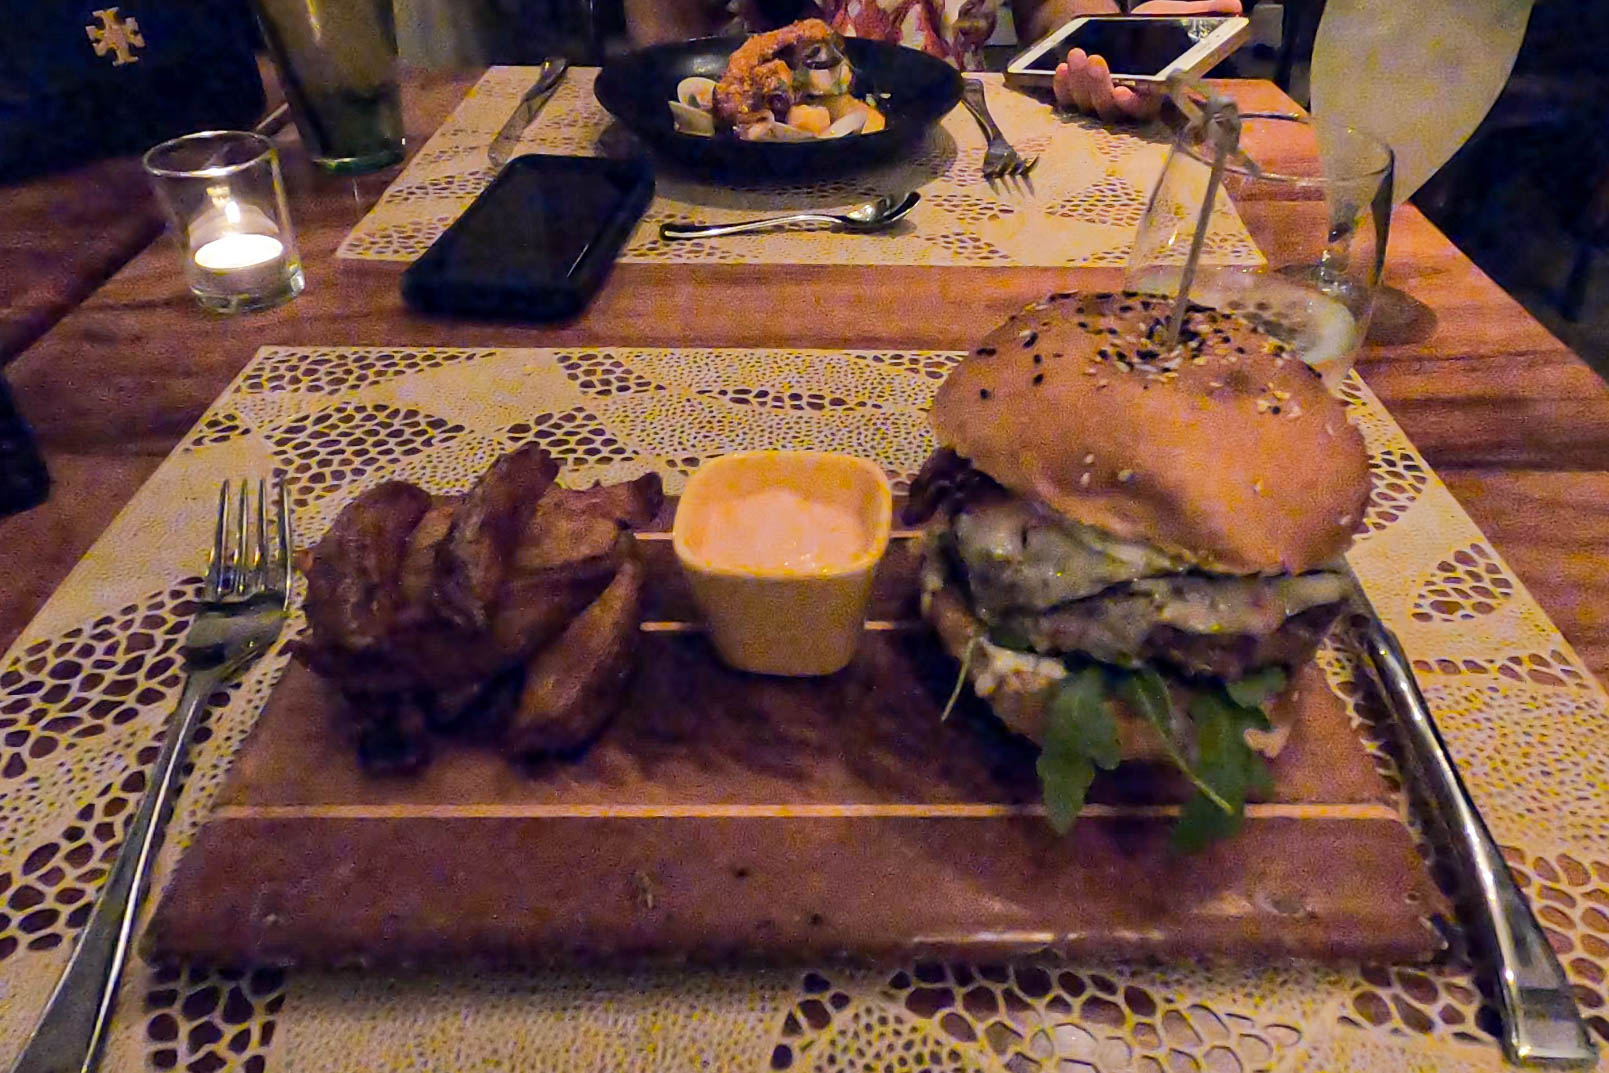 Must-Try Restaurants in Panama City: Caliope Restaurant, Casco Viejo (4 Estaciones Hamburguesa)